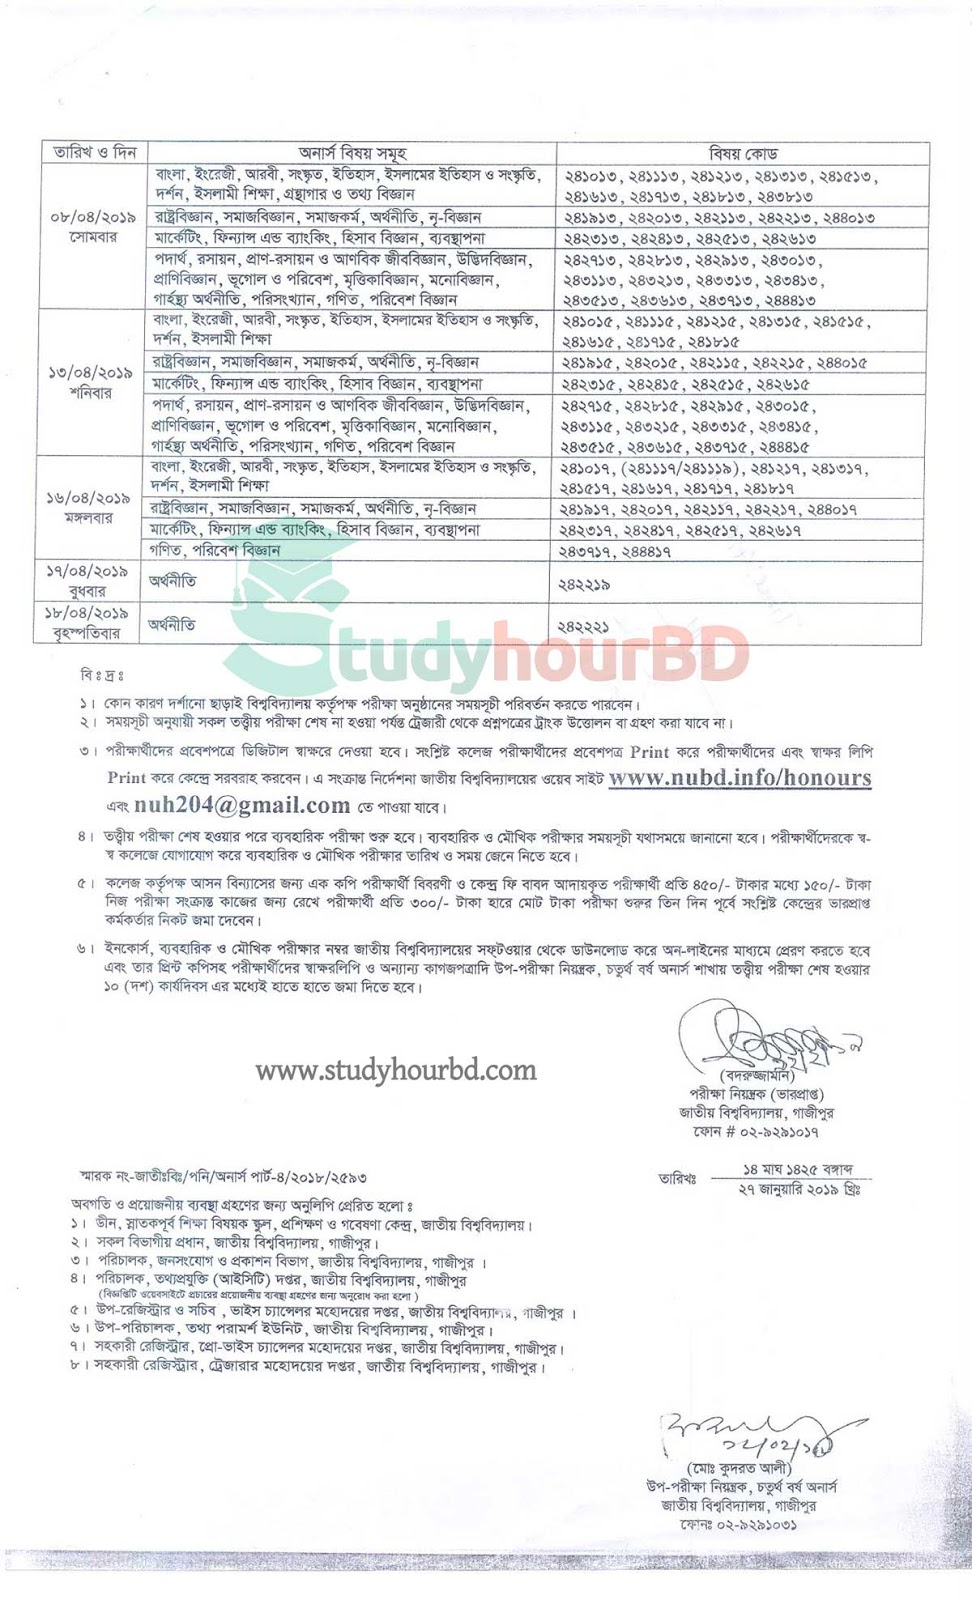 Honours 4th year exam routine 2019 part2